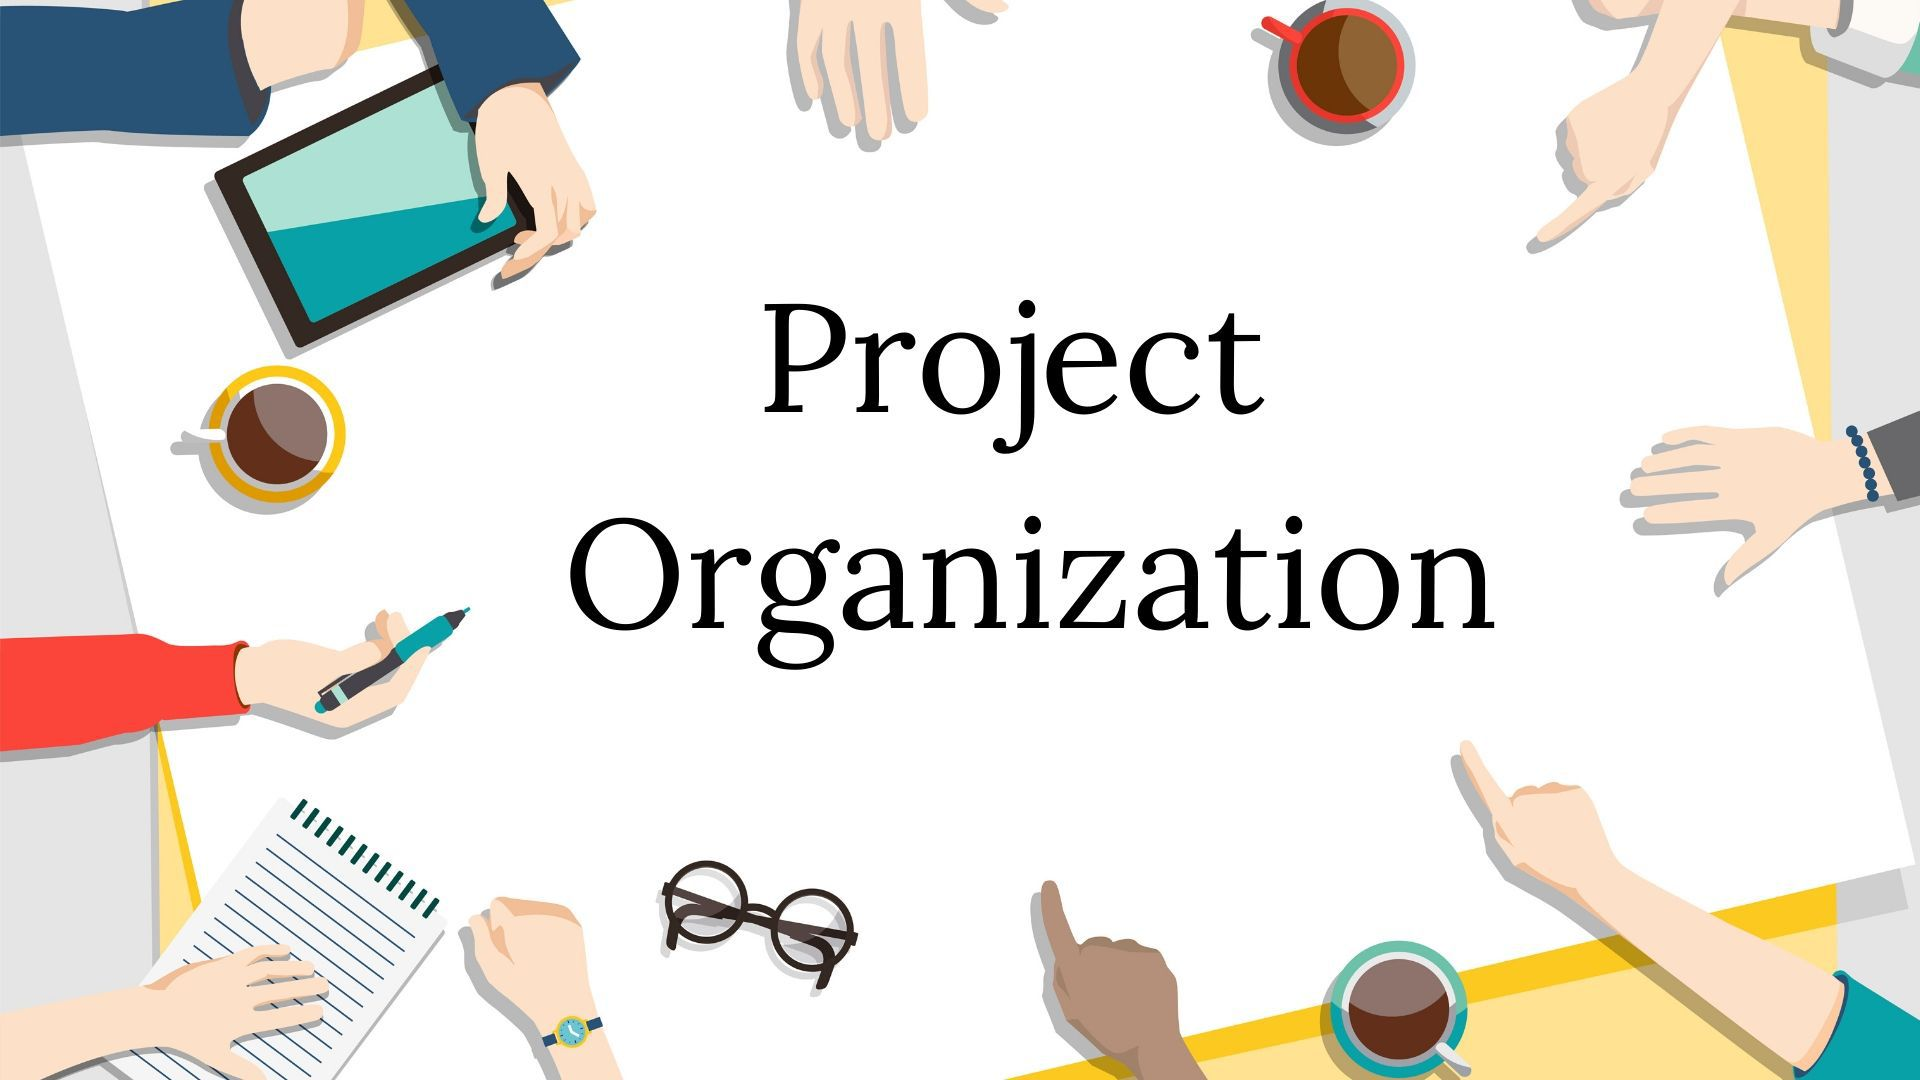 What is Project Organization